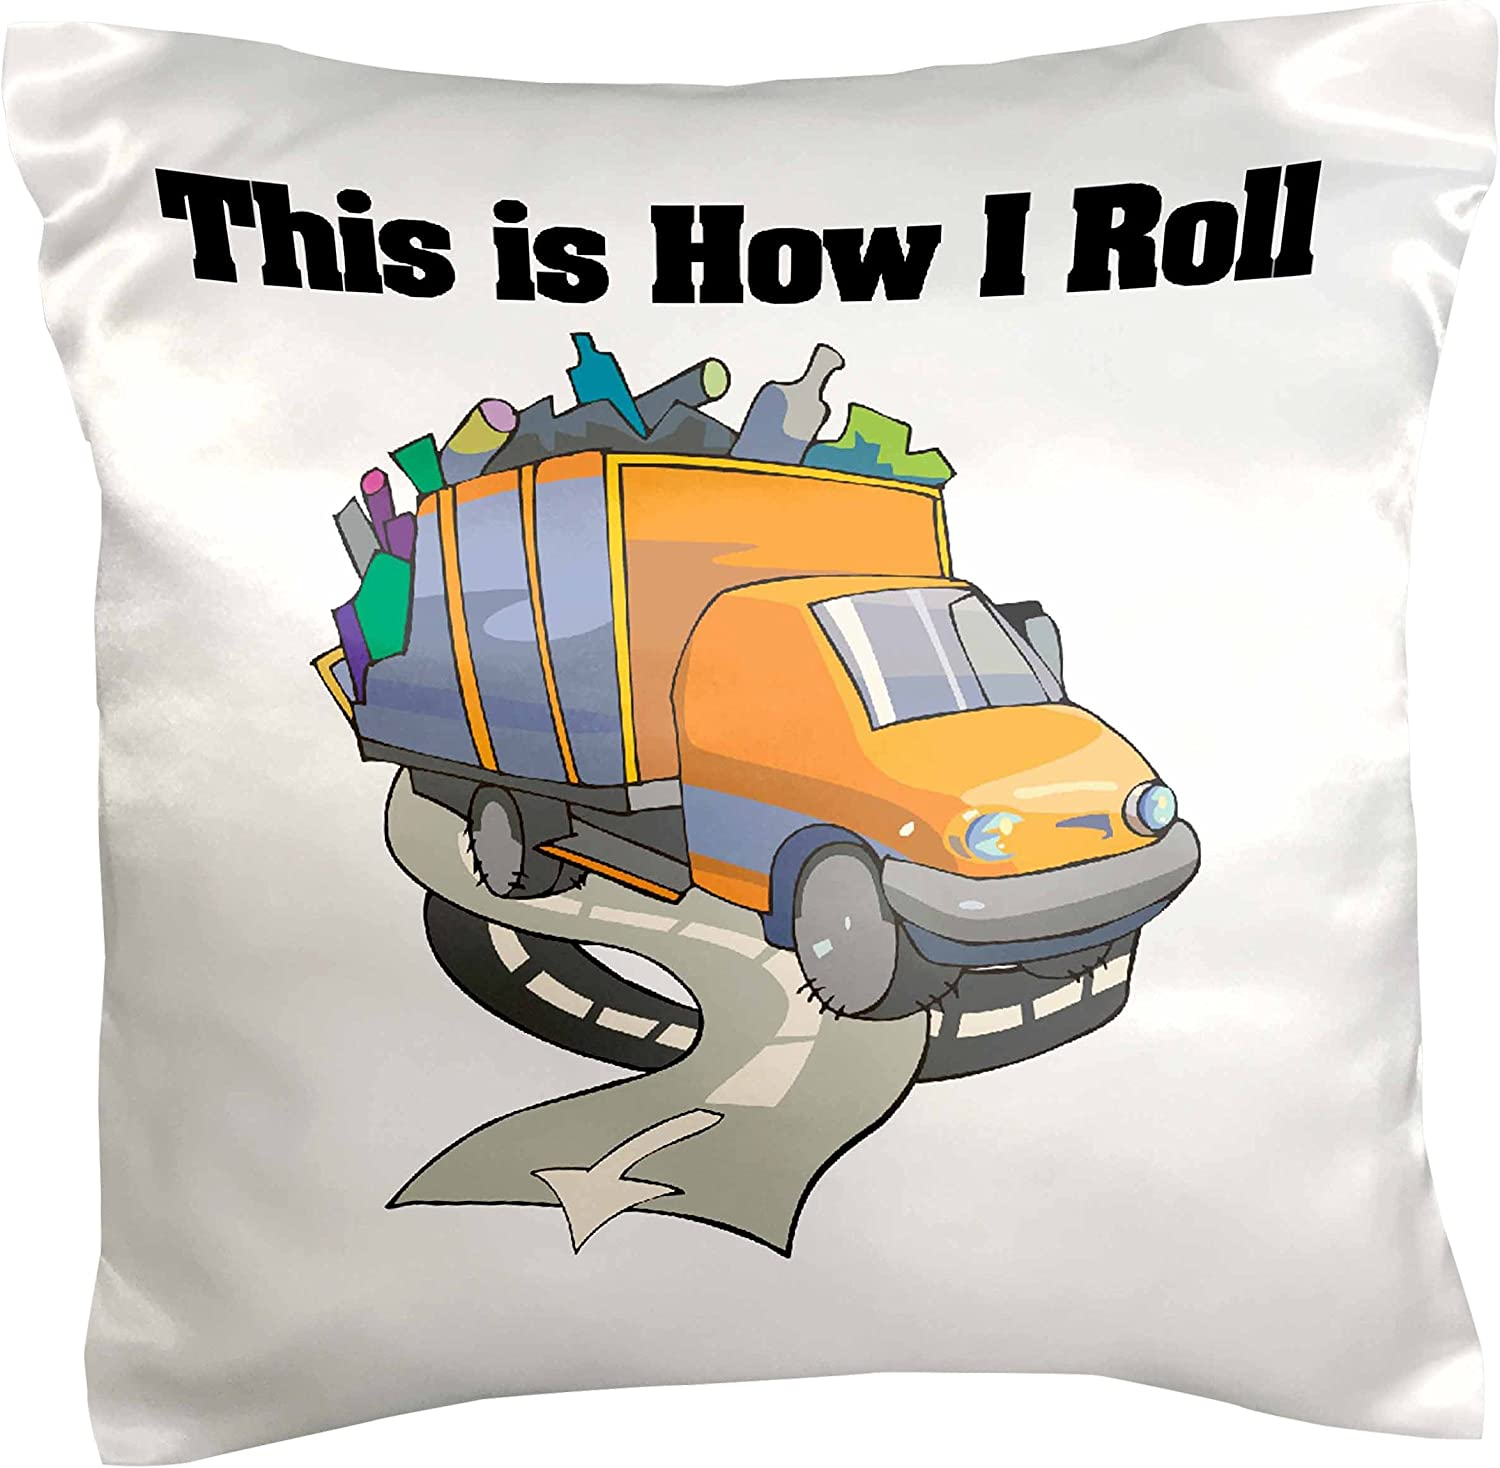 Amazon Com 3drose Pc 102577 1 This Is How I Roll Garbage Truck Garbageman Design Pillow Case 16 By 16 Arts Crafts Sewing